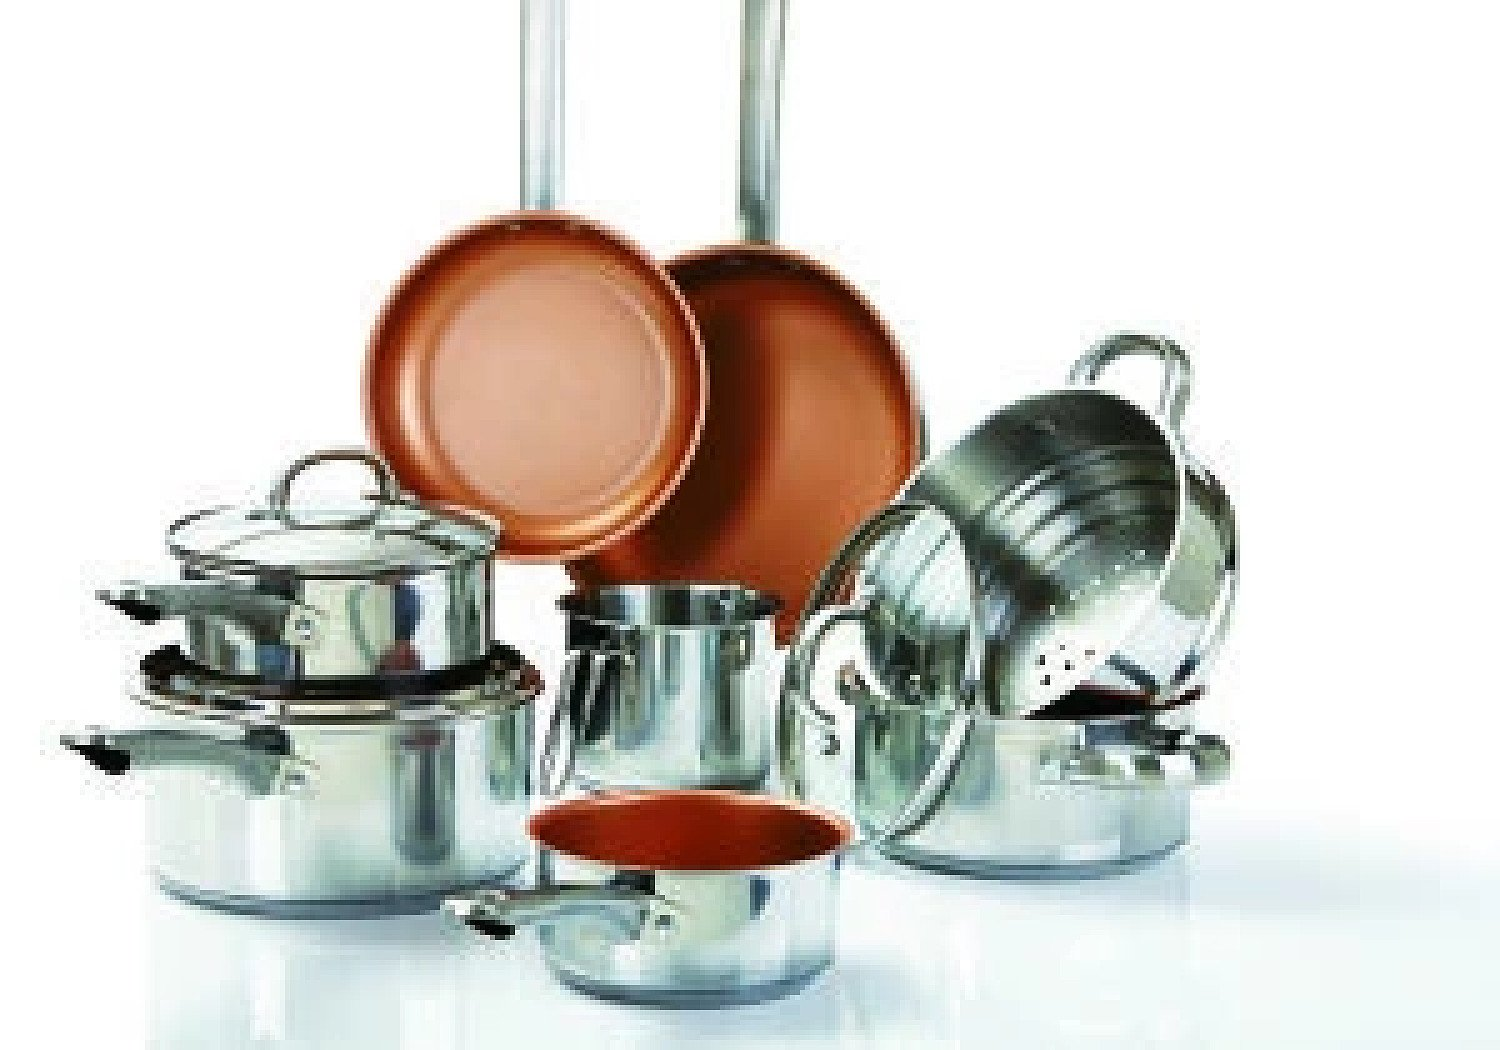 11 pieces Cookware Set Stainless Steel Copper Non-Stick Healthy Cooking Free Postage